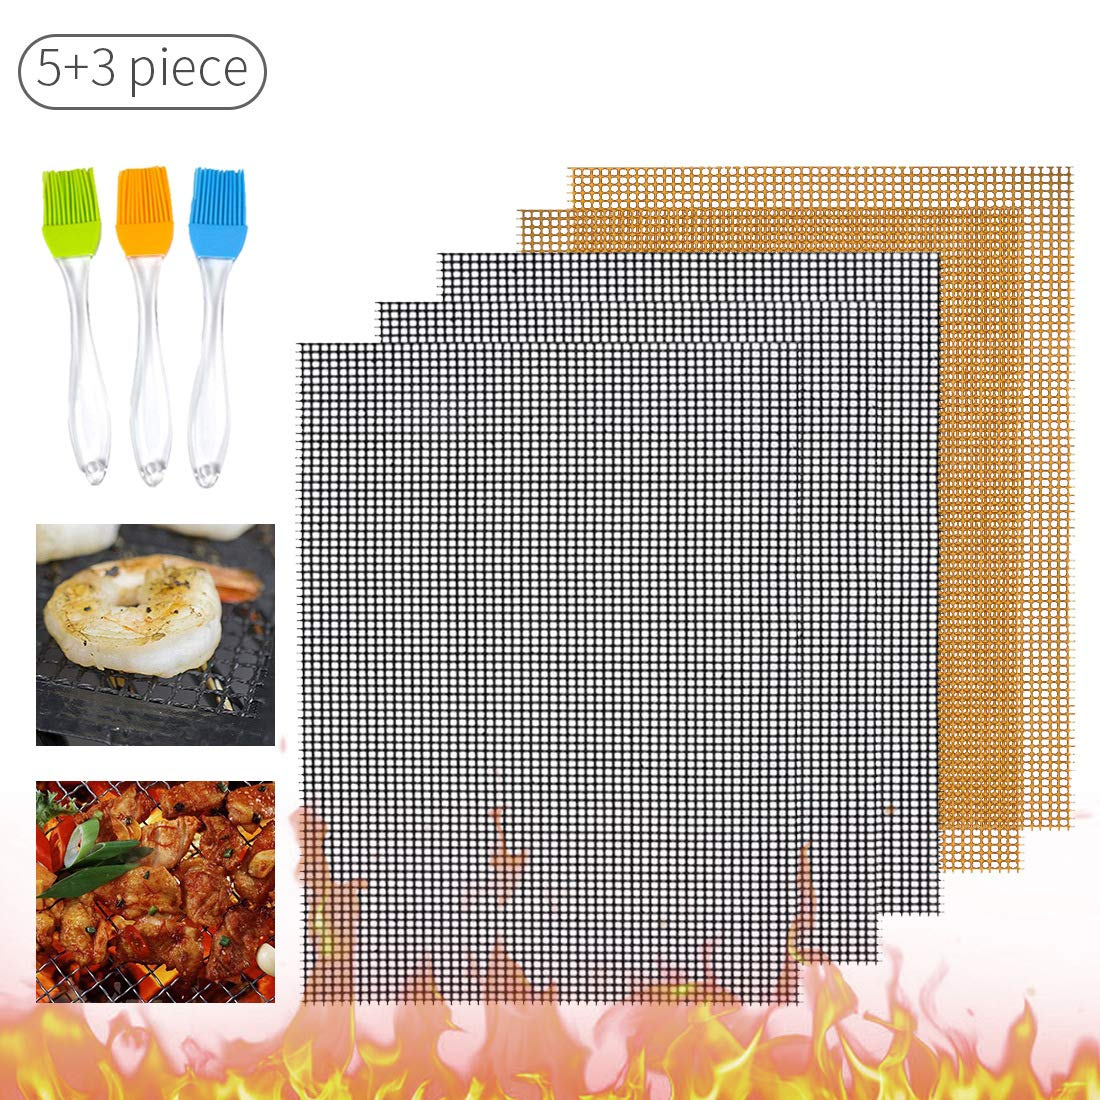 AWOPEE BBQ Grill Mesh Mat Set of 5 - Non-Stick Cooking Mats for Grilled Vegetables/Fish/Fajitas/Shrimp, Grilling Sheet Liner, Reusable Grill Accessories - Use on Gas, Charcoal, Electric Barbecue